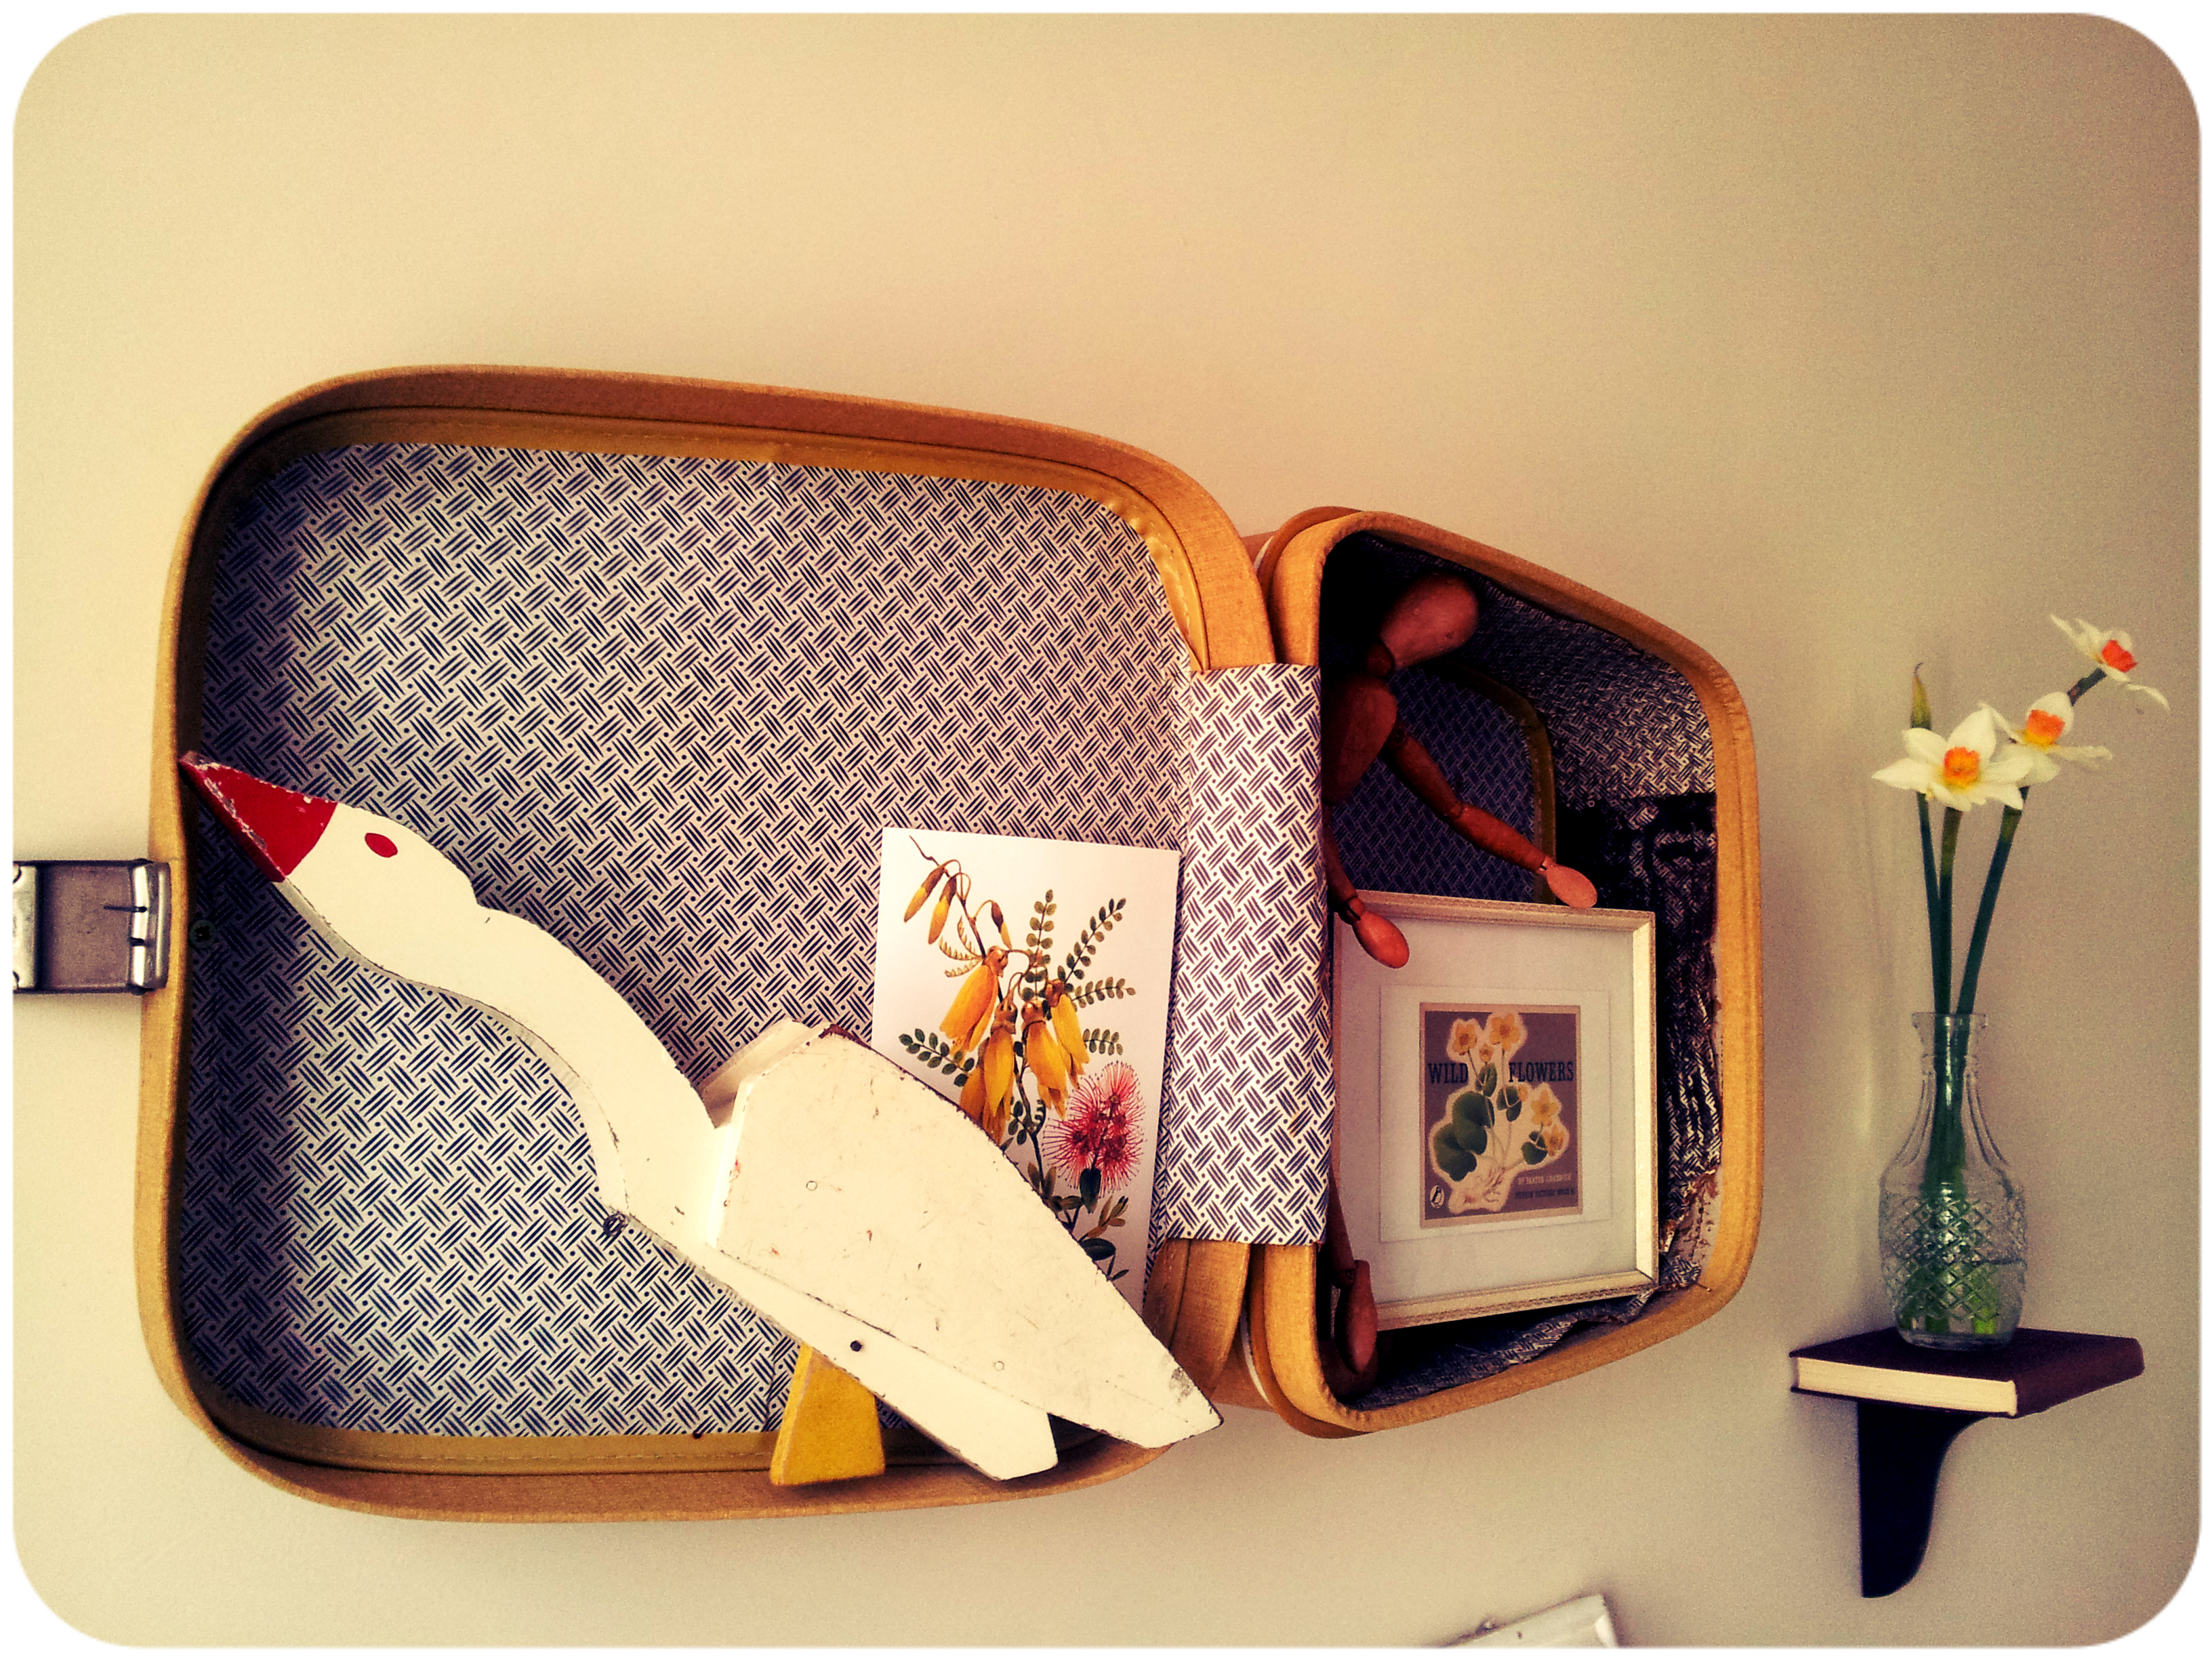 Vintage Suitcase Shelves For Sale It 39s A Vintage Suitcase Er Stuck On The Wall Y 39know